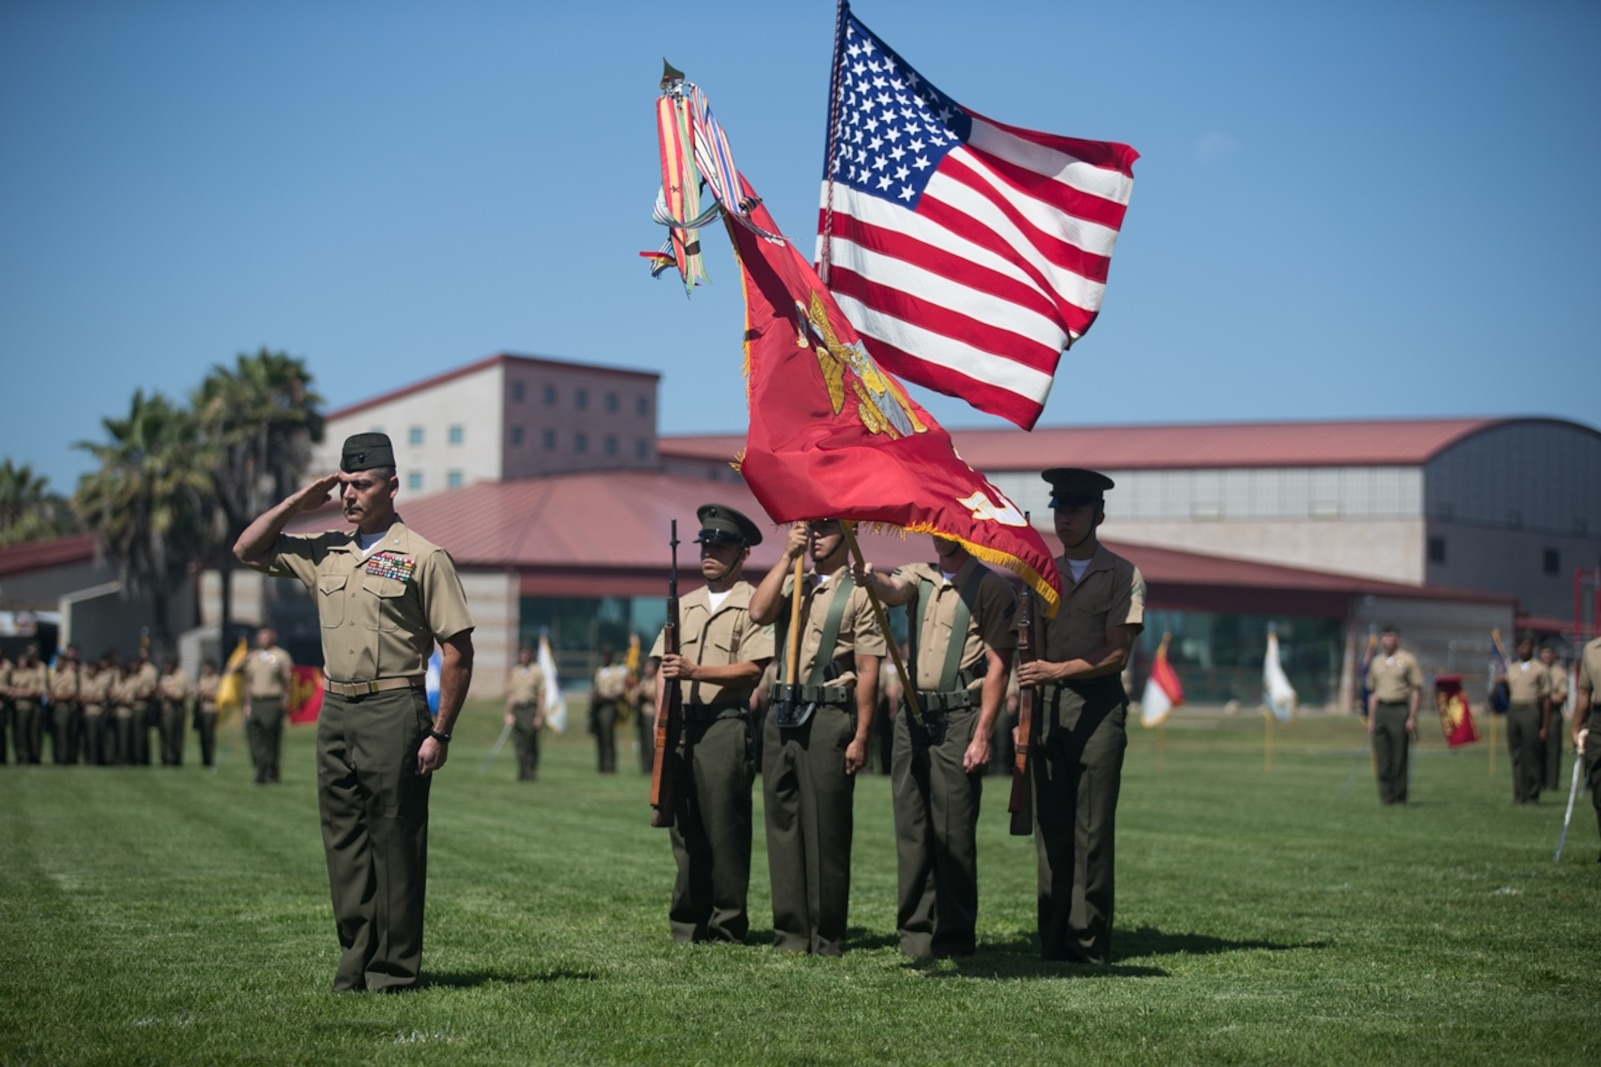 U.S. Marine Col. Phillip N. Frietze renders honors during the national anthem at the Headquarters Regiment, 1st Marine Logistics Group, change of command ceremony on Camp Pendleton, Calif., June 15, 2017. The ceremony included marching of the colors, passing of the regimental colors, presenting Col. Frietze his away and closing remarks from the oncoming and off going personnel as well as the 1st MLG Commanding General, Brig. Gen. David A. Ottignon. (U.S. Marine Corps photo by Lance Cpl. Timothy Shoemaker)